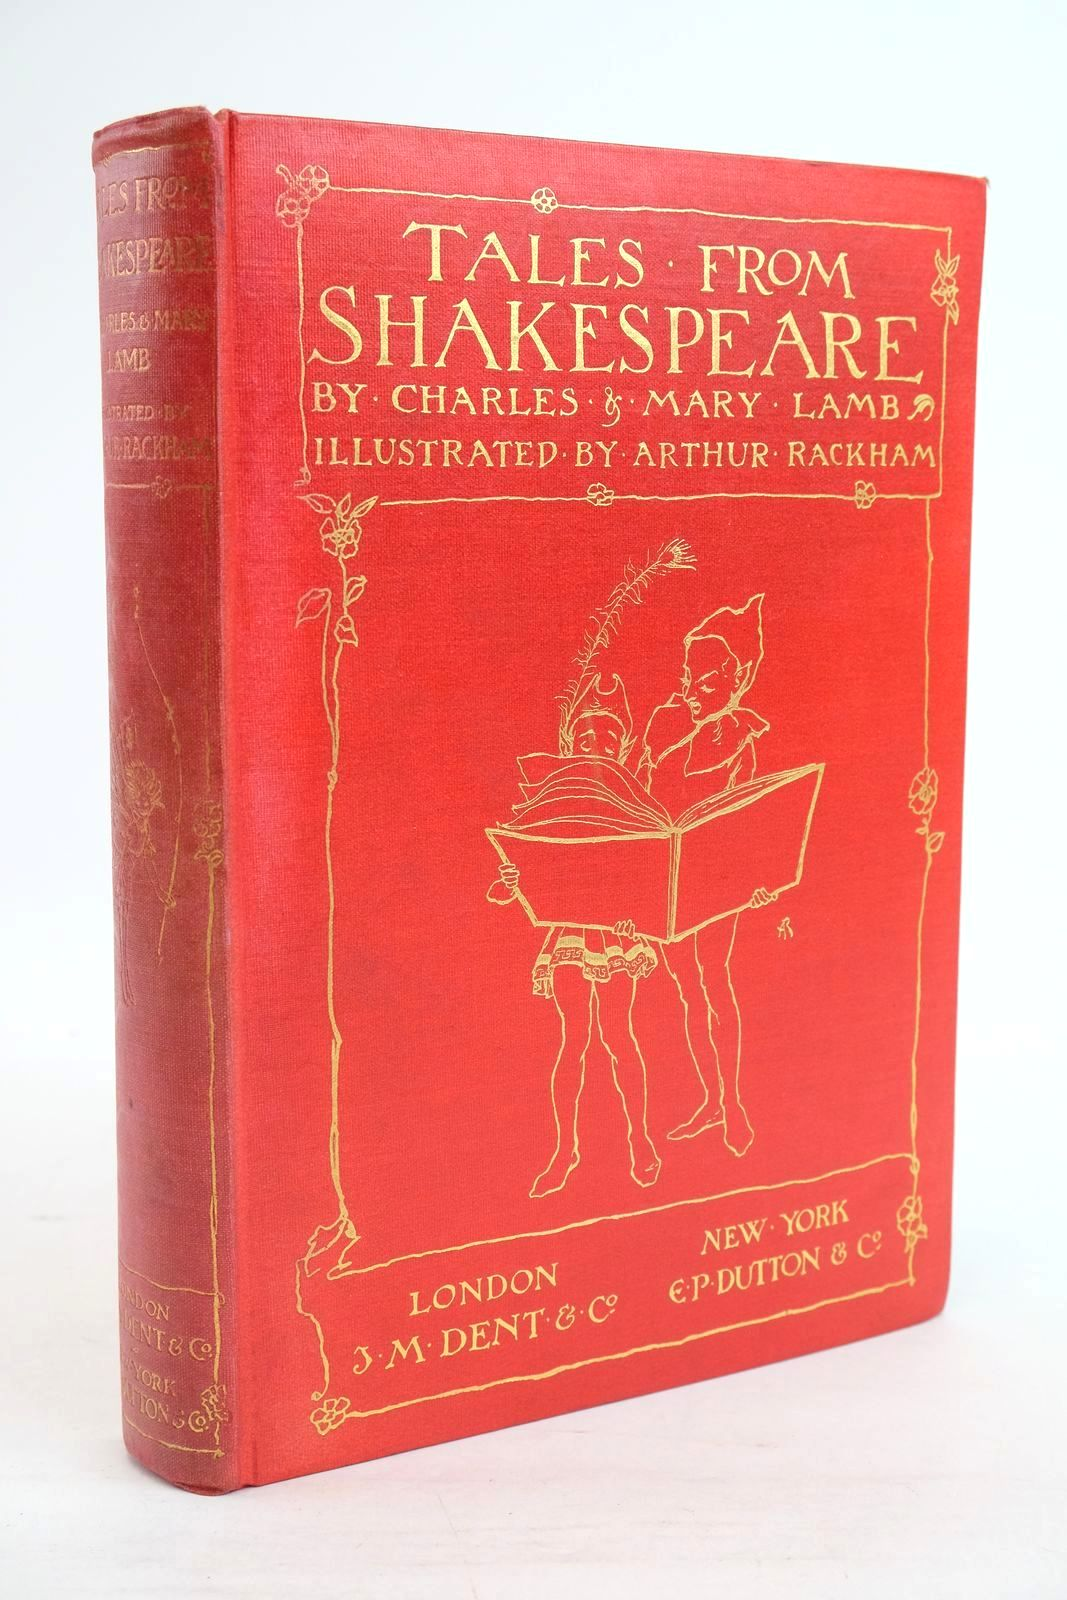 Photo of TALES FROM SHAKESPEARE written by Lamb, Charles Lamb, Mary illustrated by Rackham, Arthur published by J.M. Dent & Co. (STOCK CODE: 1320087)  for sale by Stella & Rose's Books